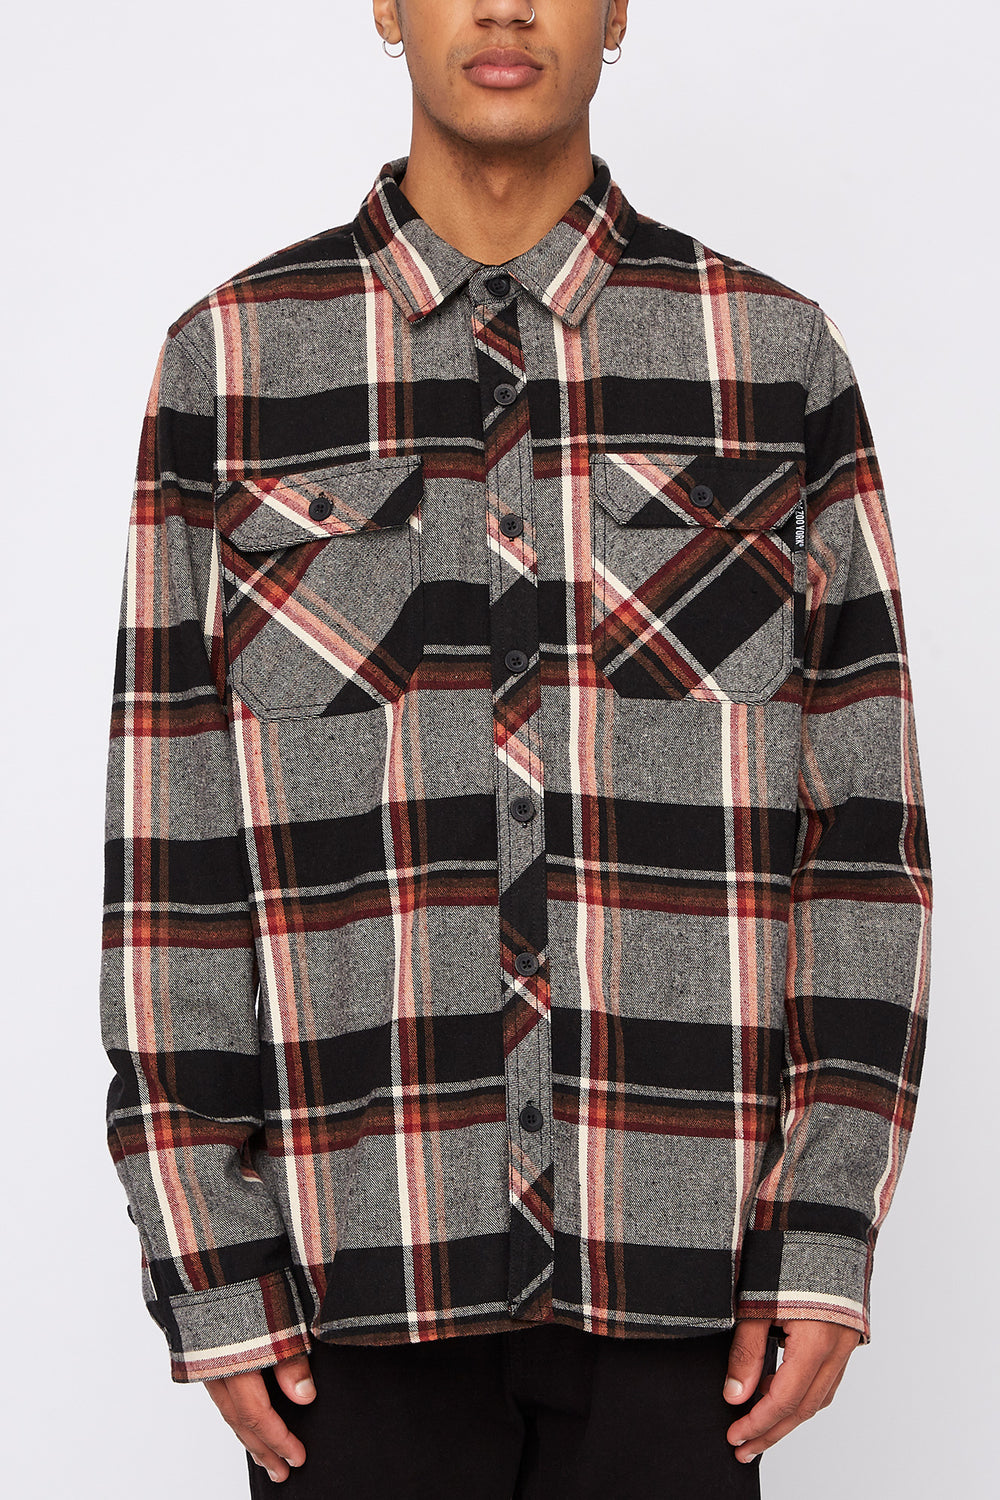 Zoo York Mens Hooded Flannel Shirt Black